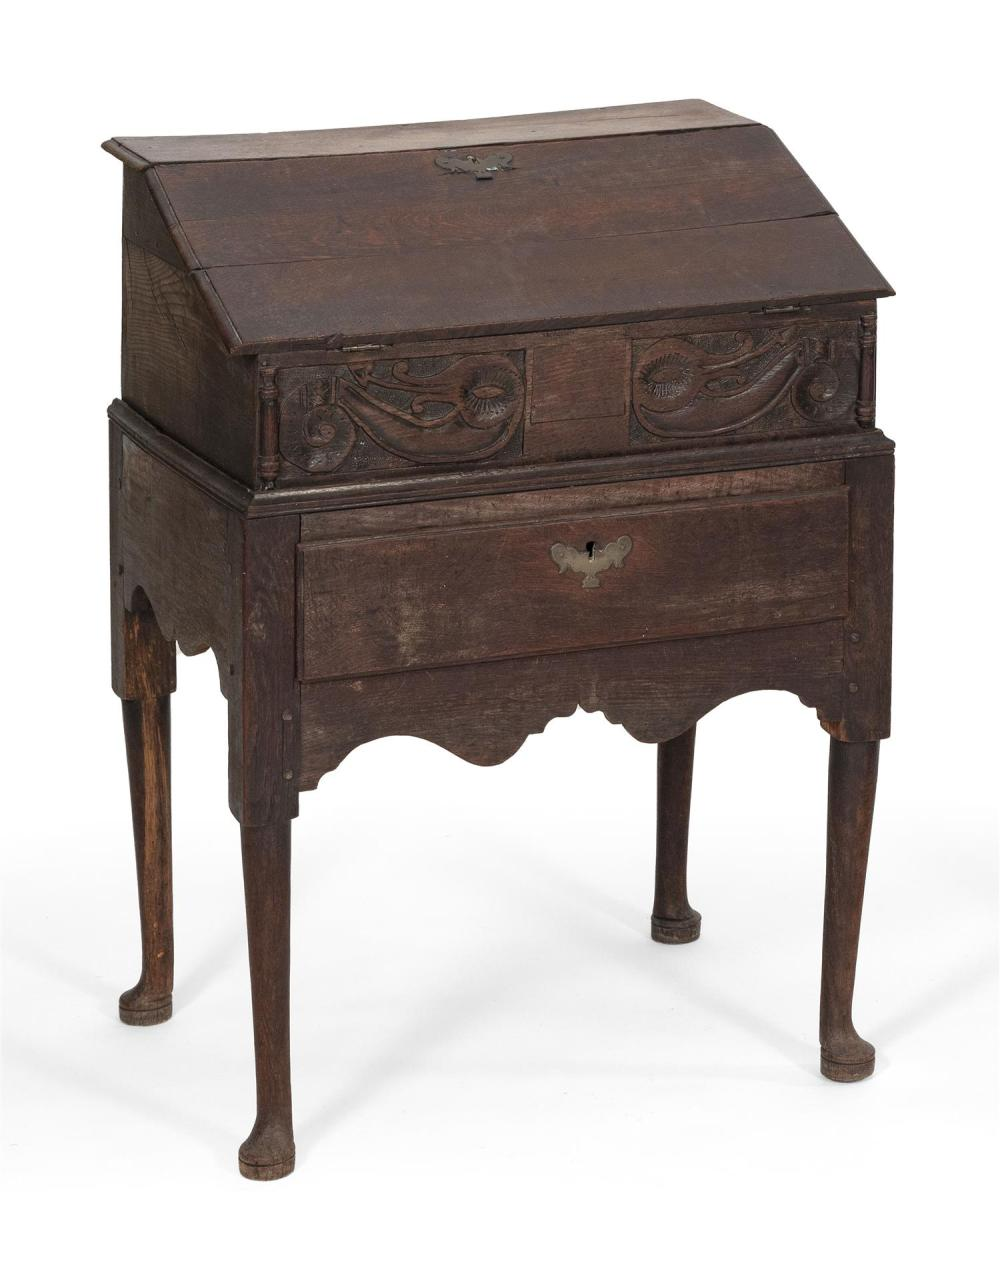 GEORGE II DESK ON FRAME In oak. Desk with slant lid that opens to serve as a writing surface and conceals three interior drawers. Fr...